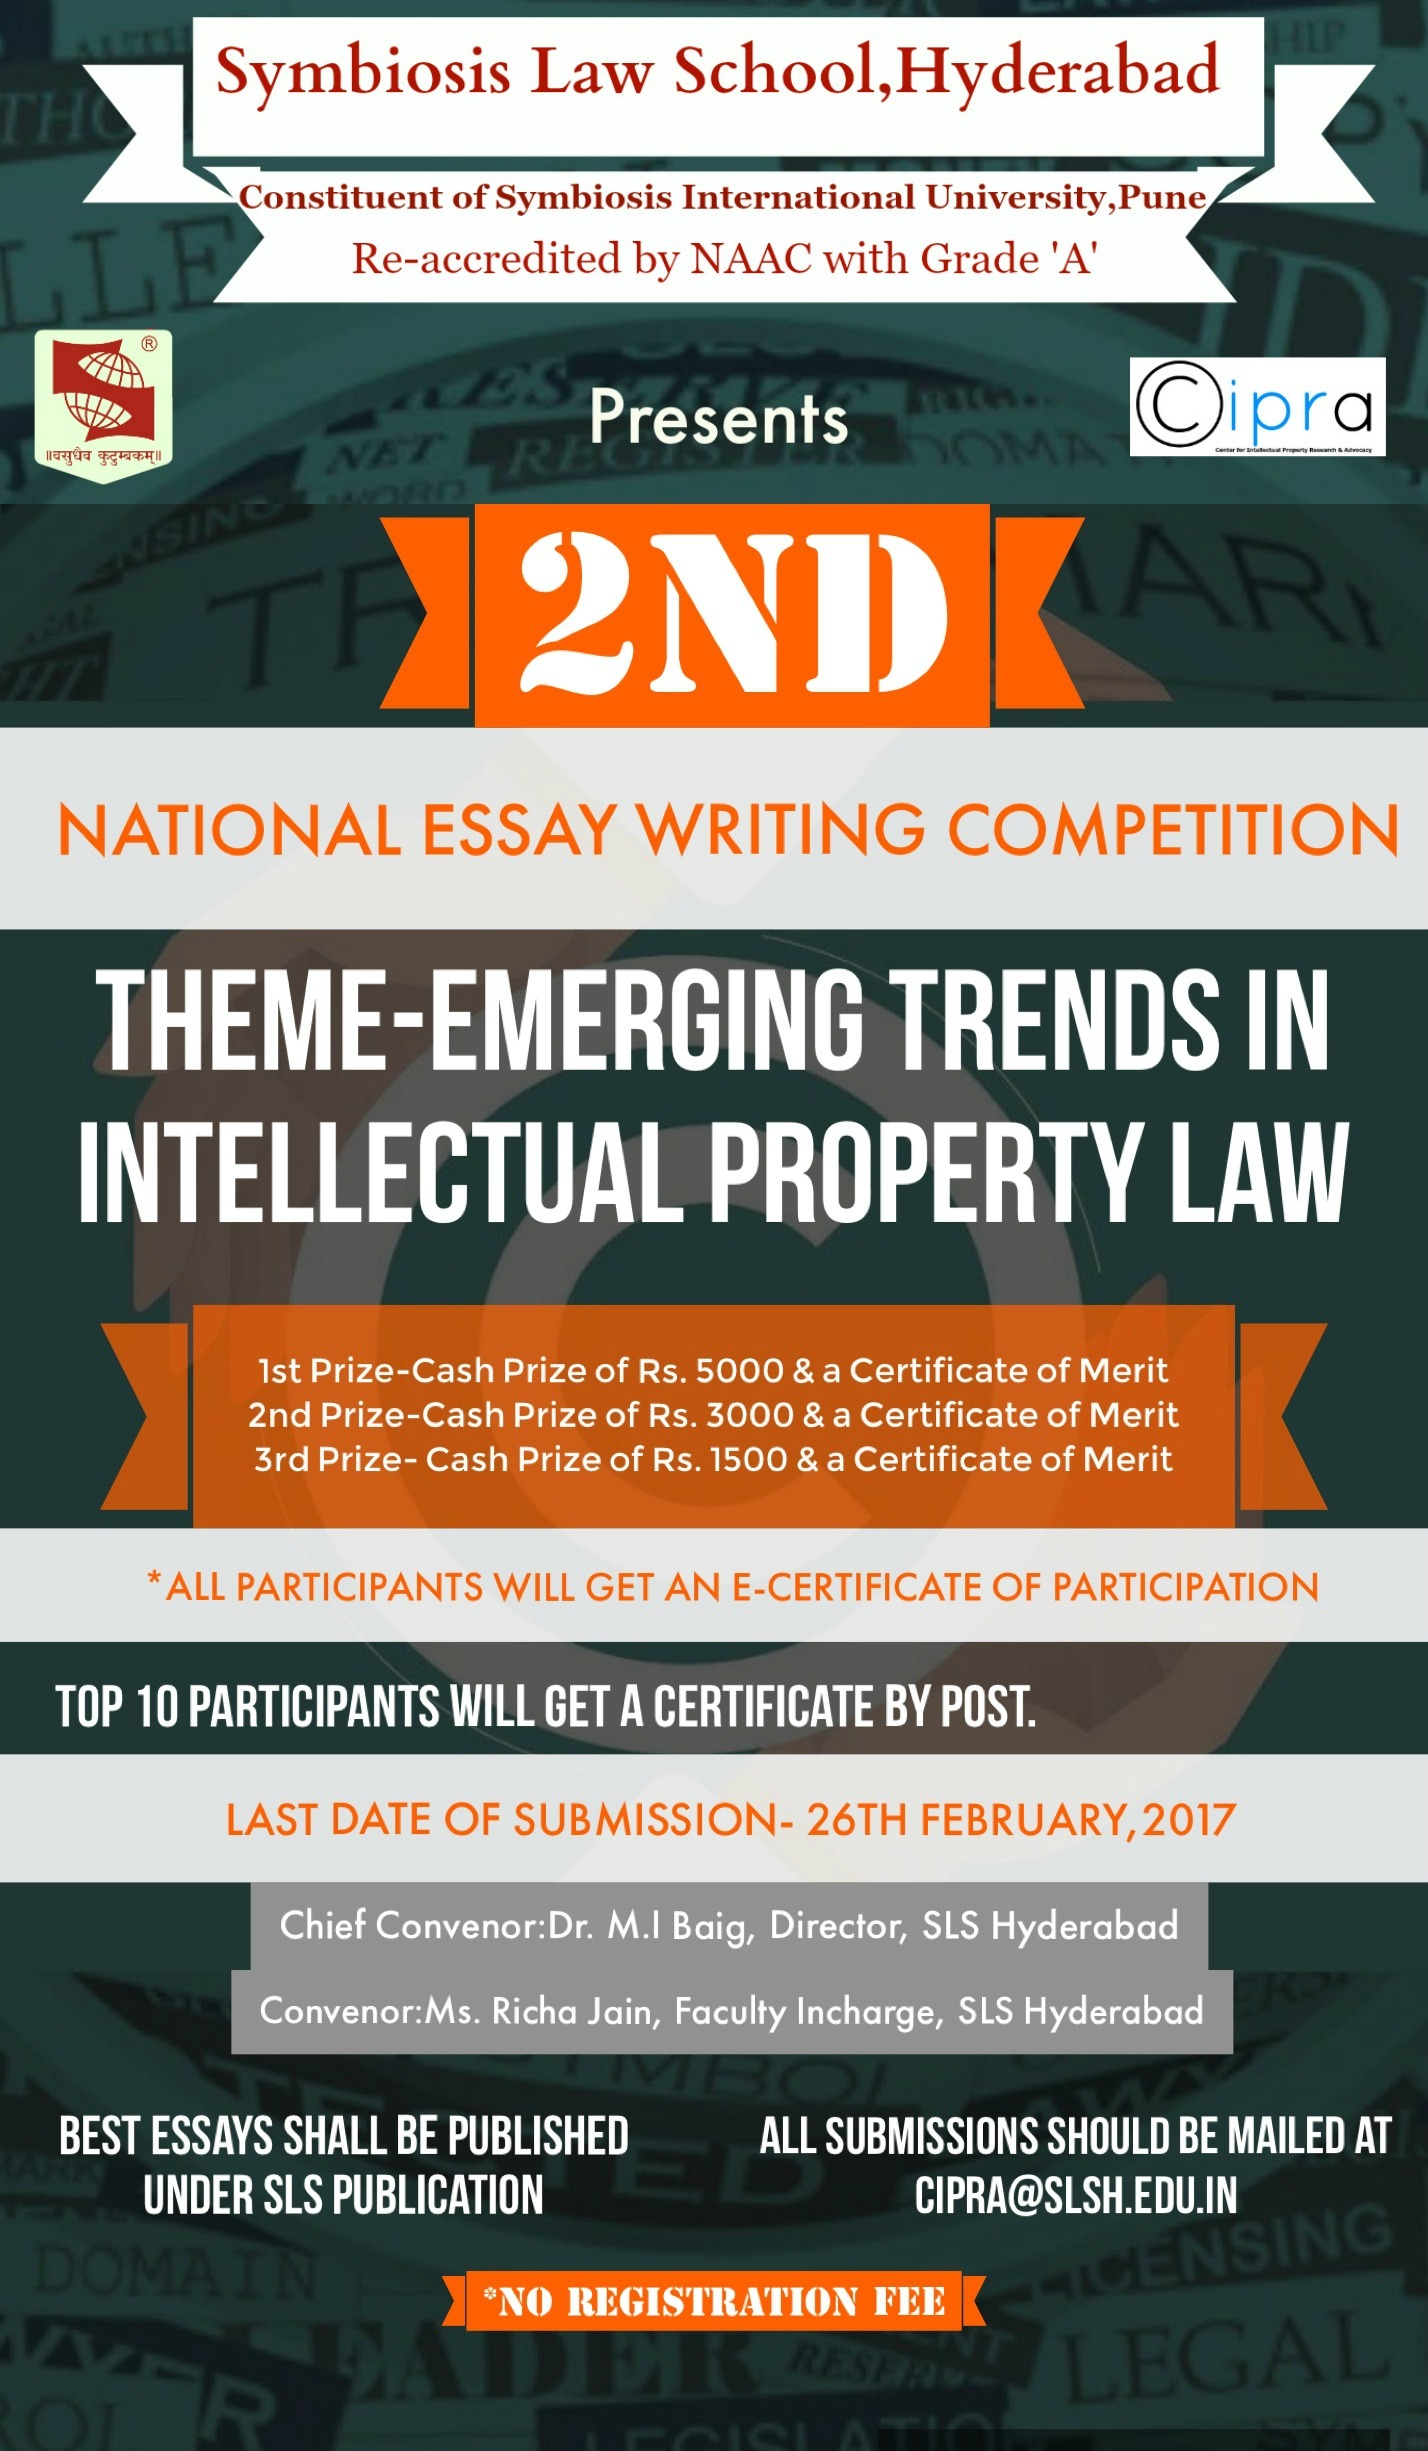 symbiosis law school hyderabad nd national essay writing 1